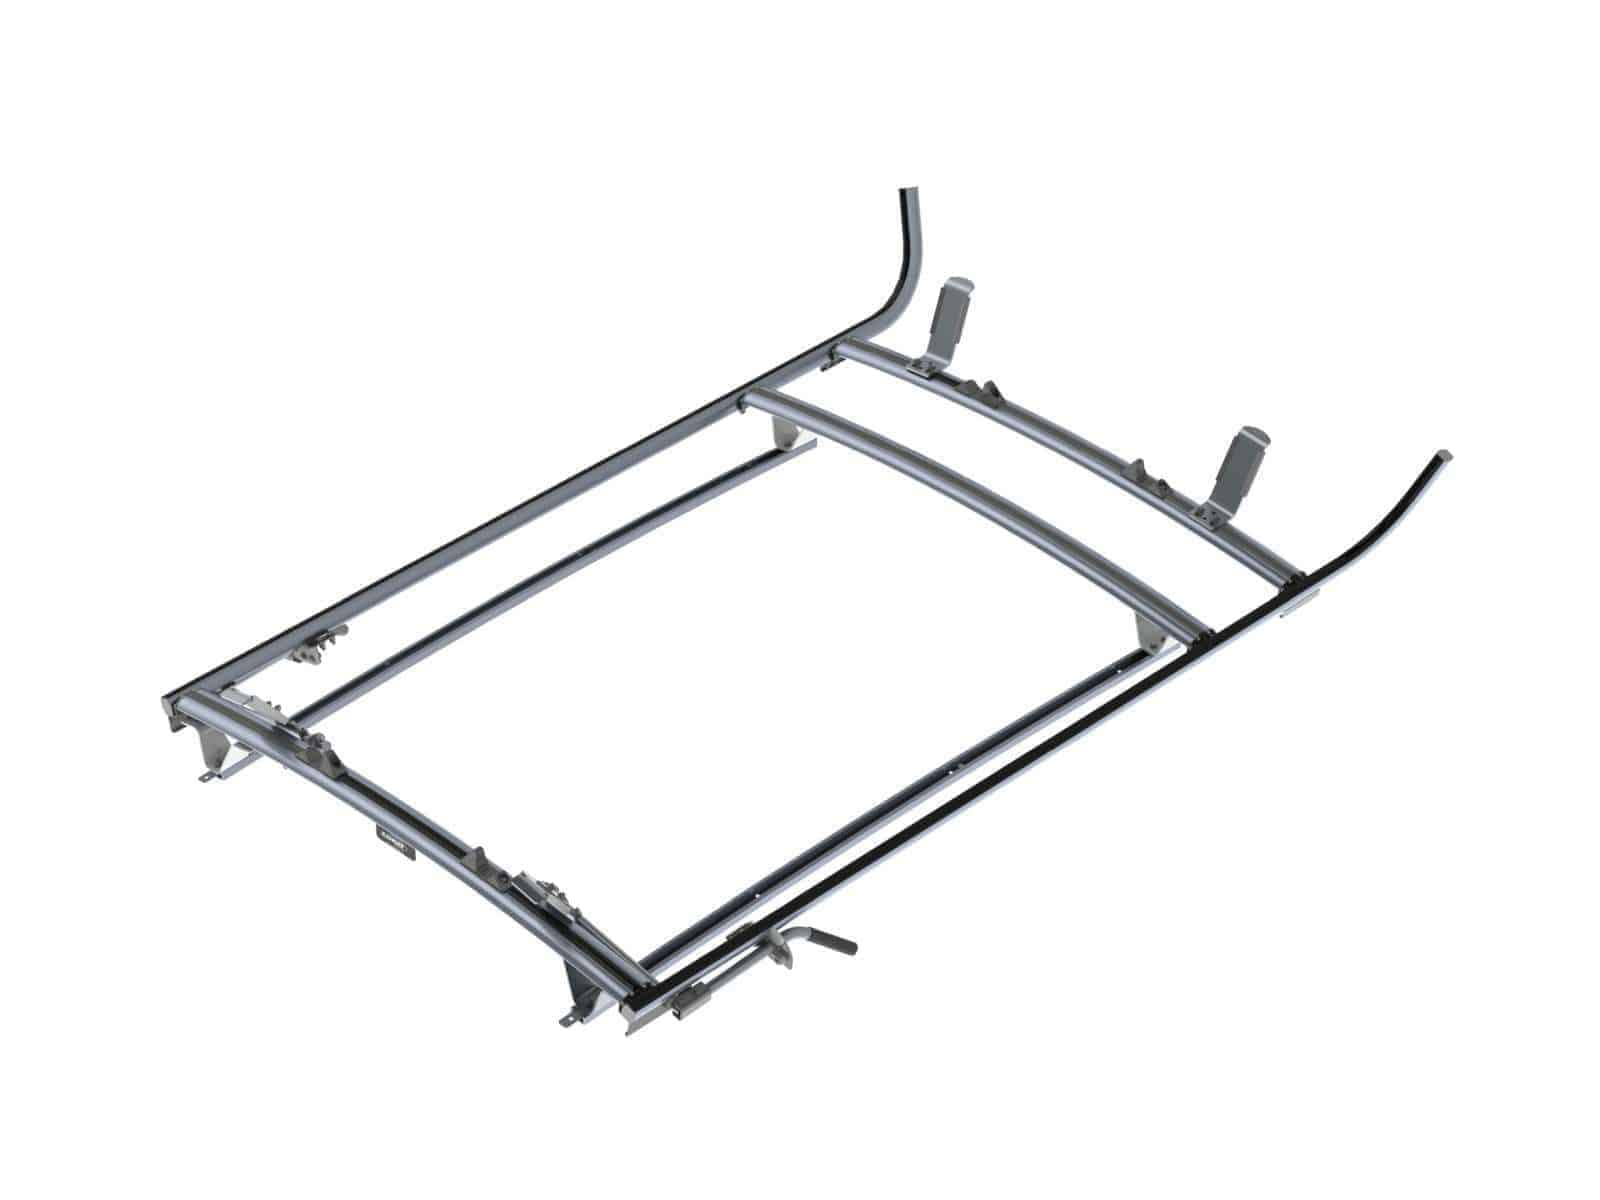 Double Clamp Ladder Rack Aluminum 3 Bar Nissan Nv200